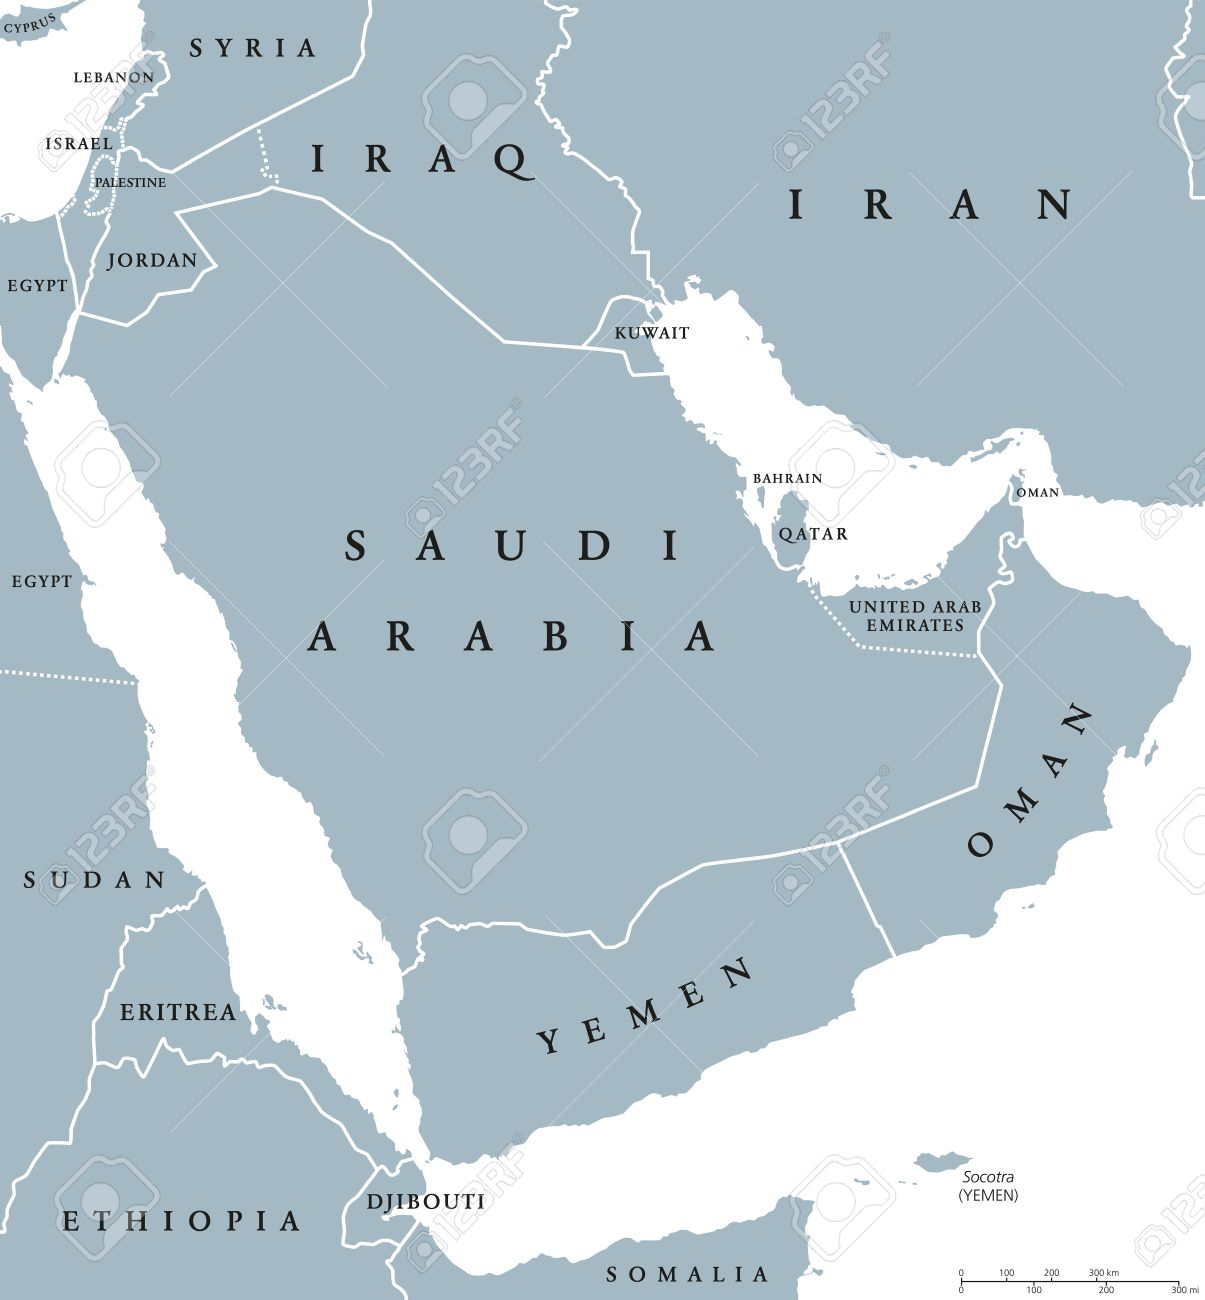 Arabian Peninsula Map Arabian Peninsula Countries Political Map With National Borders  Arabian Peninsula Map